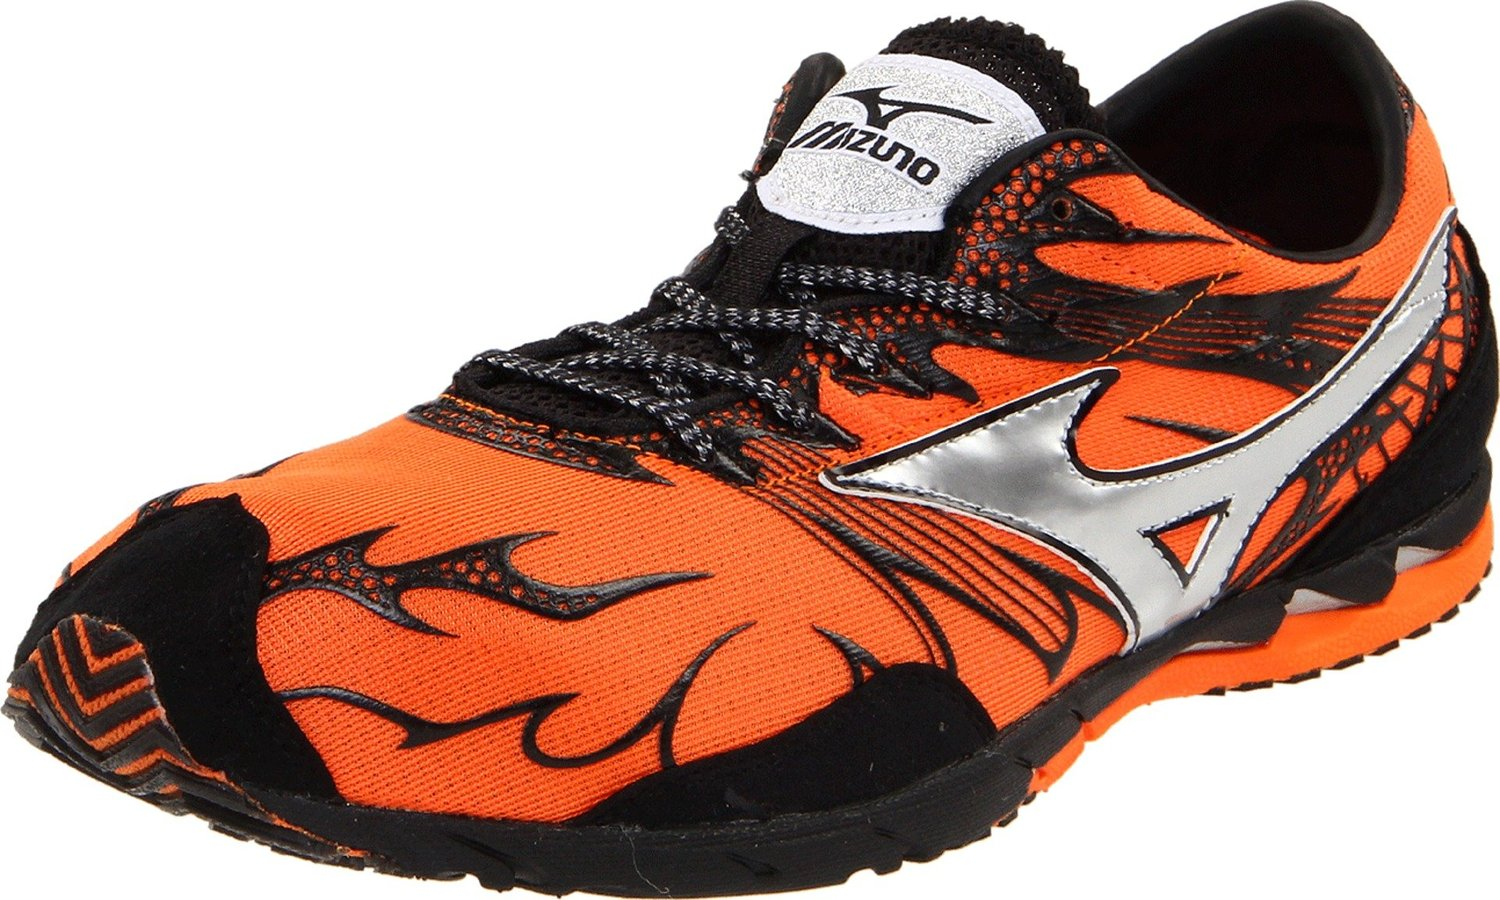 Good Running Shoes For Sprinters